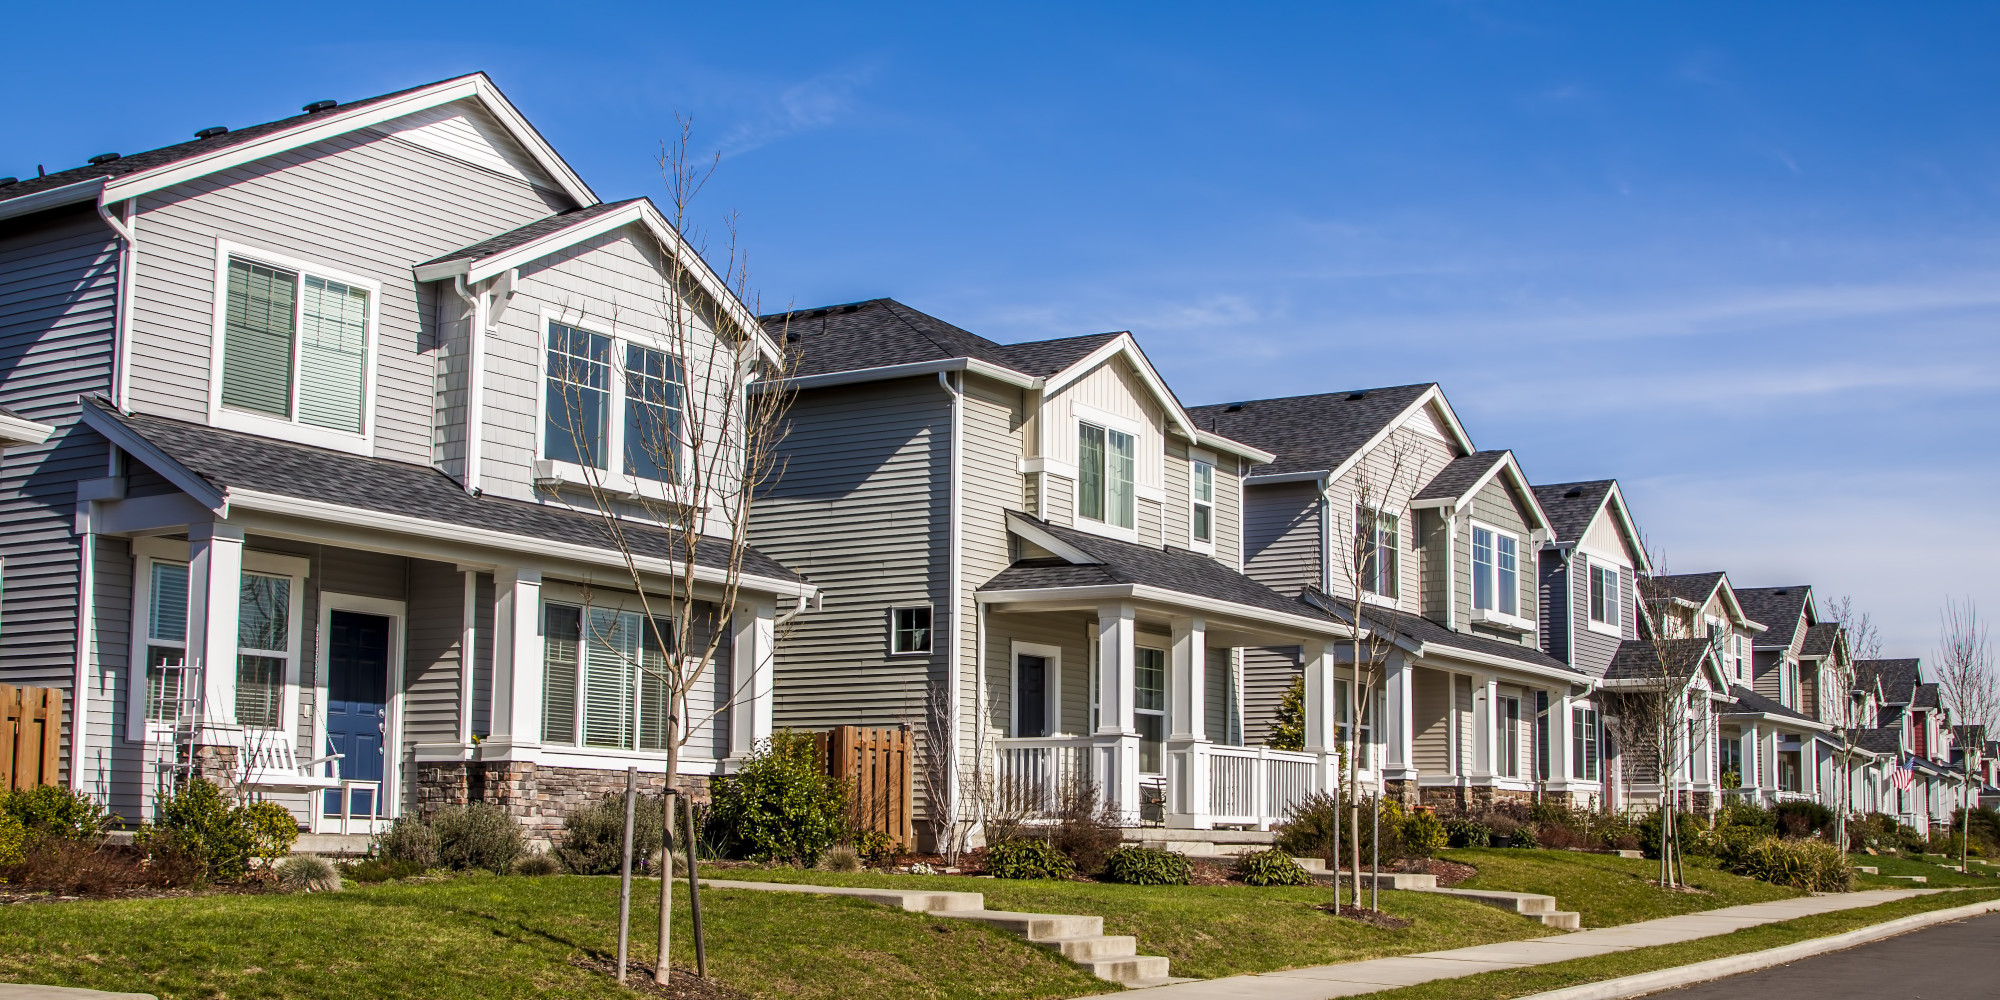 Carbon emissions in the suburbs dwarf those in cities for America best homes